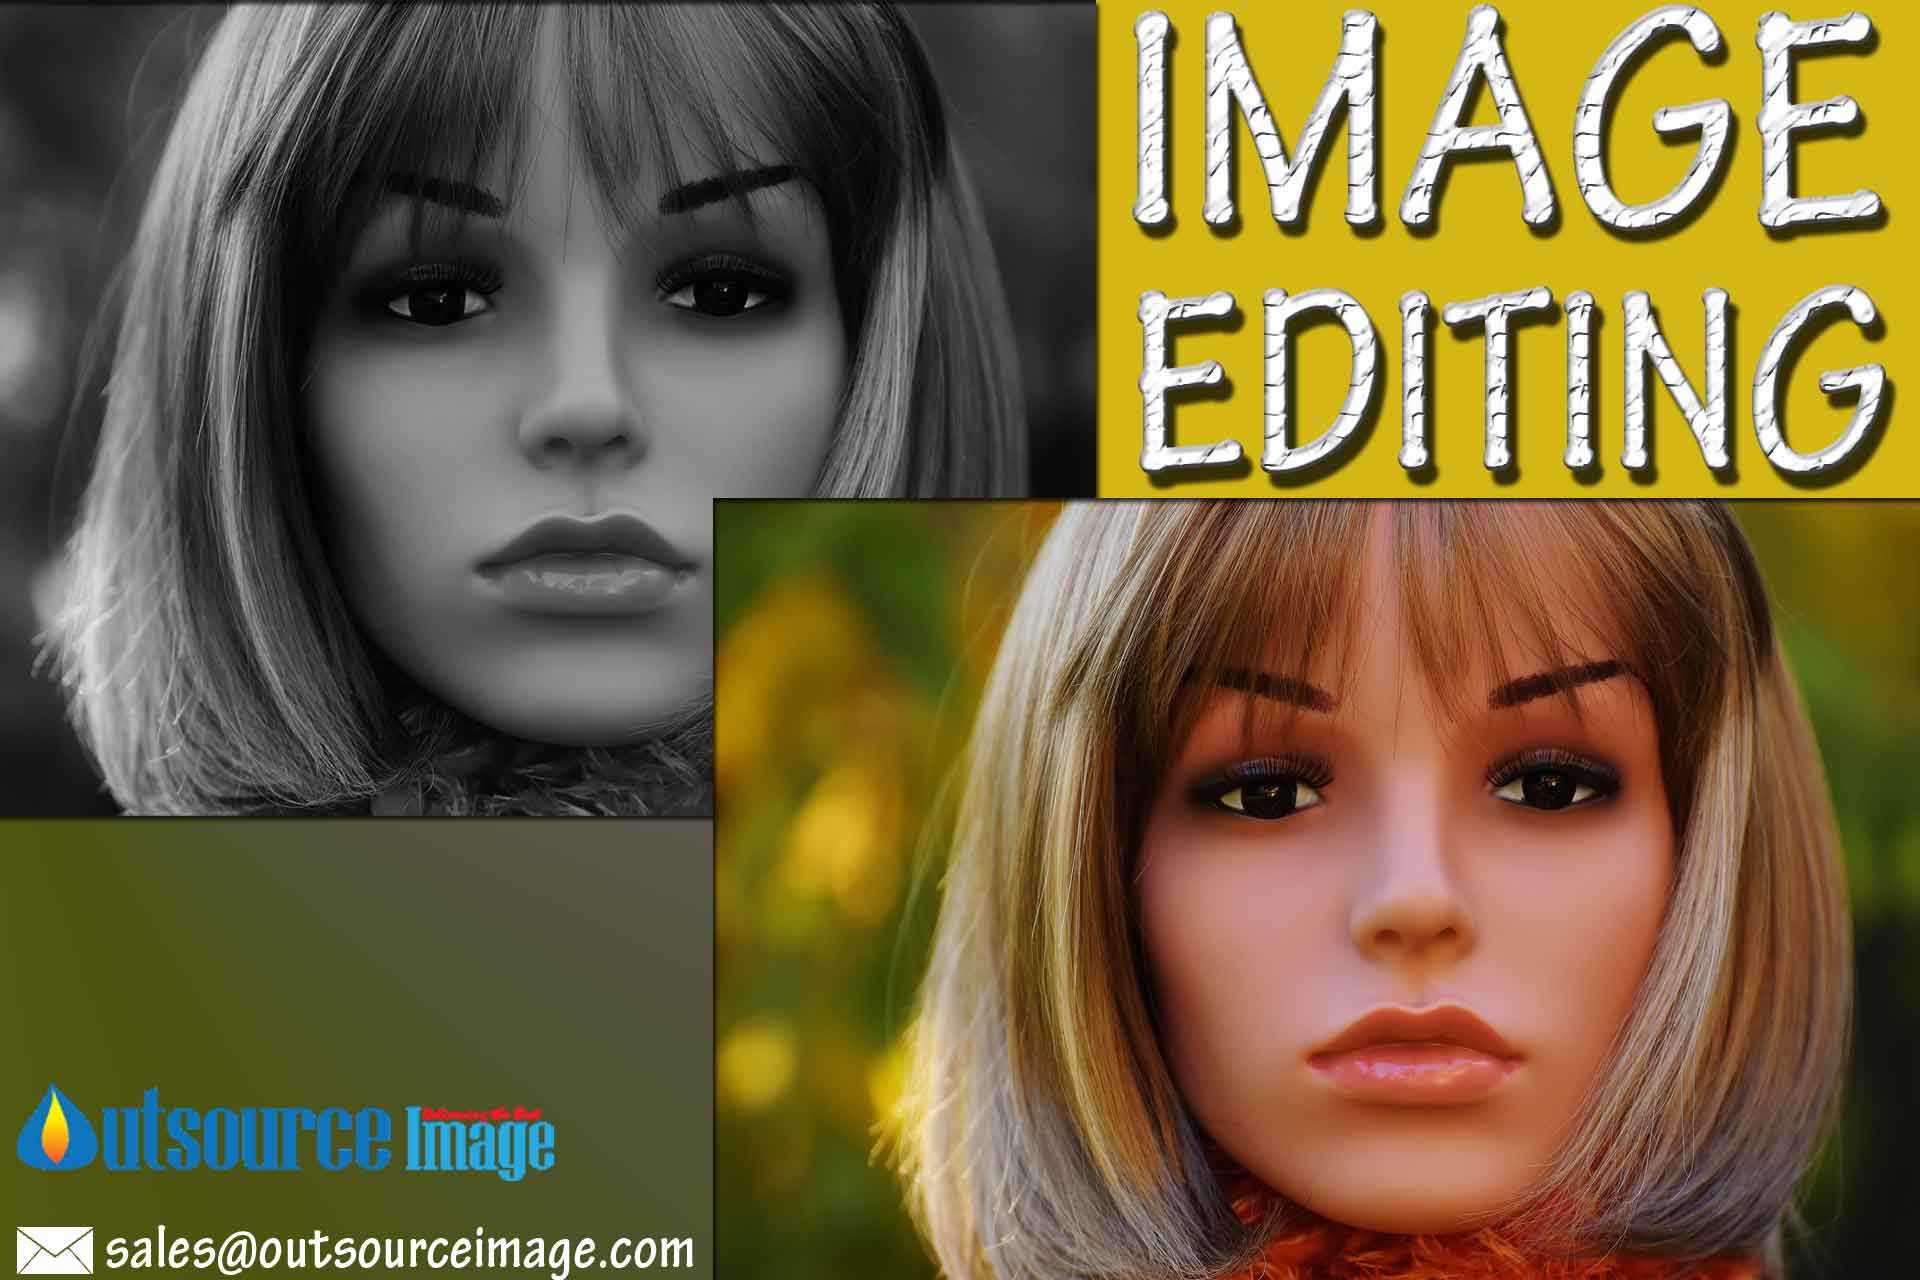 Outsource Image Editing Services | Photo Editing Services | Photo Editor Services